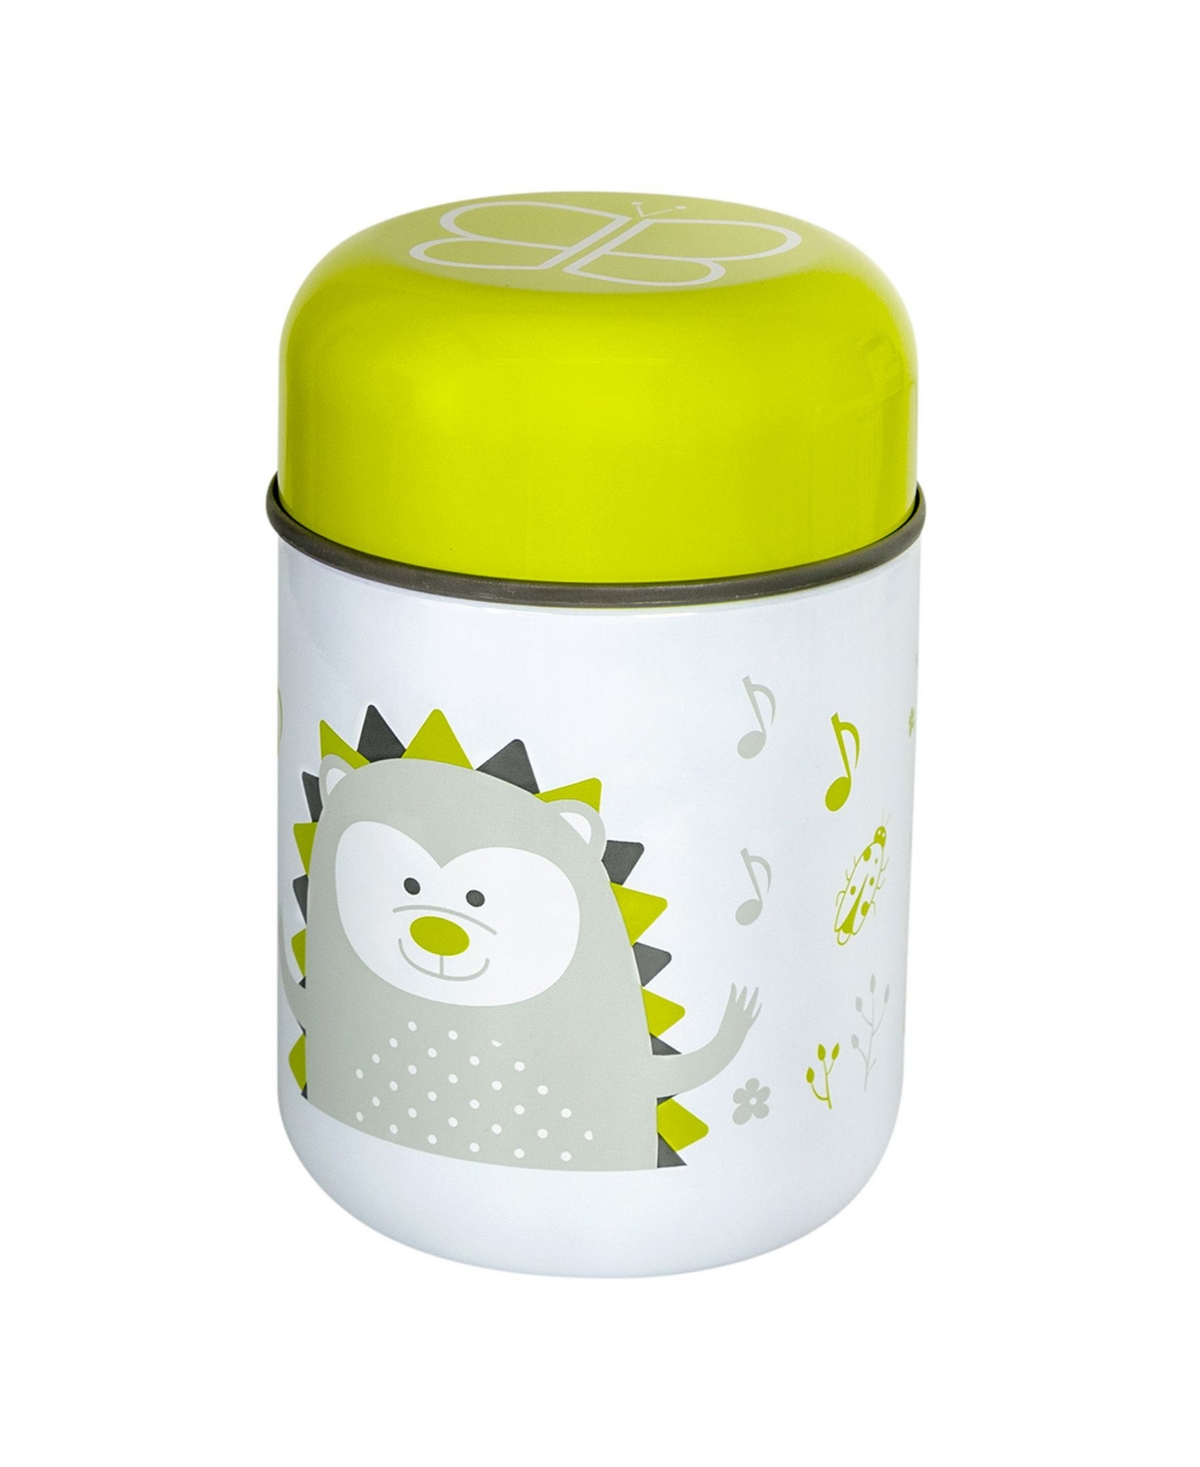 Bbluv Food Thermal Food Container with Spoon